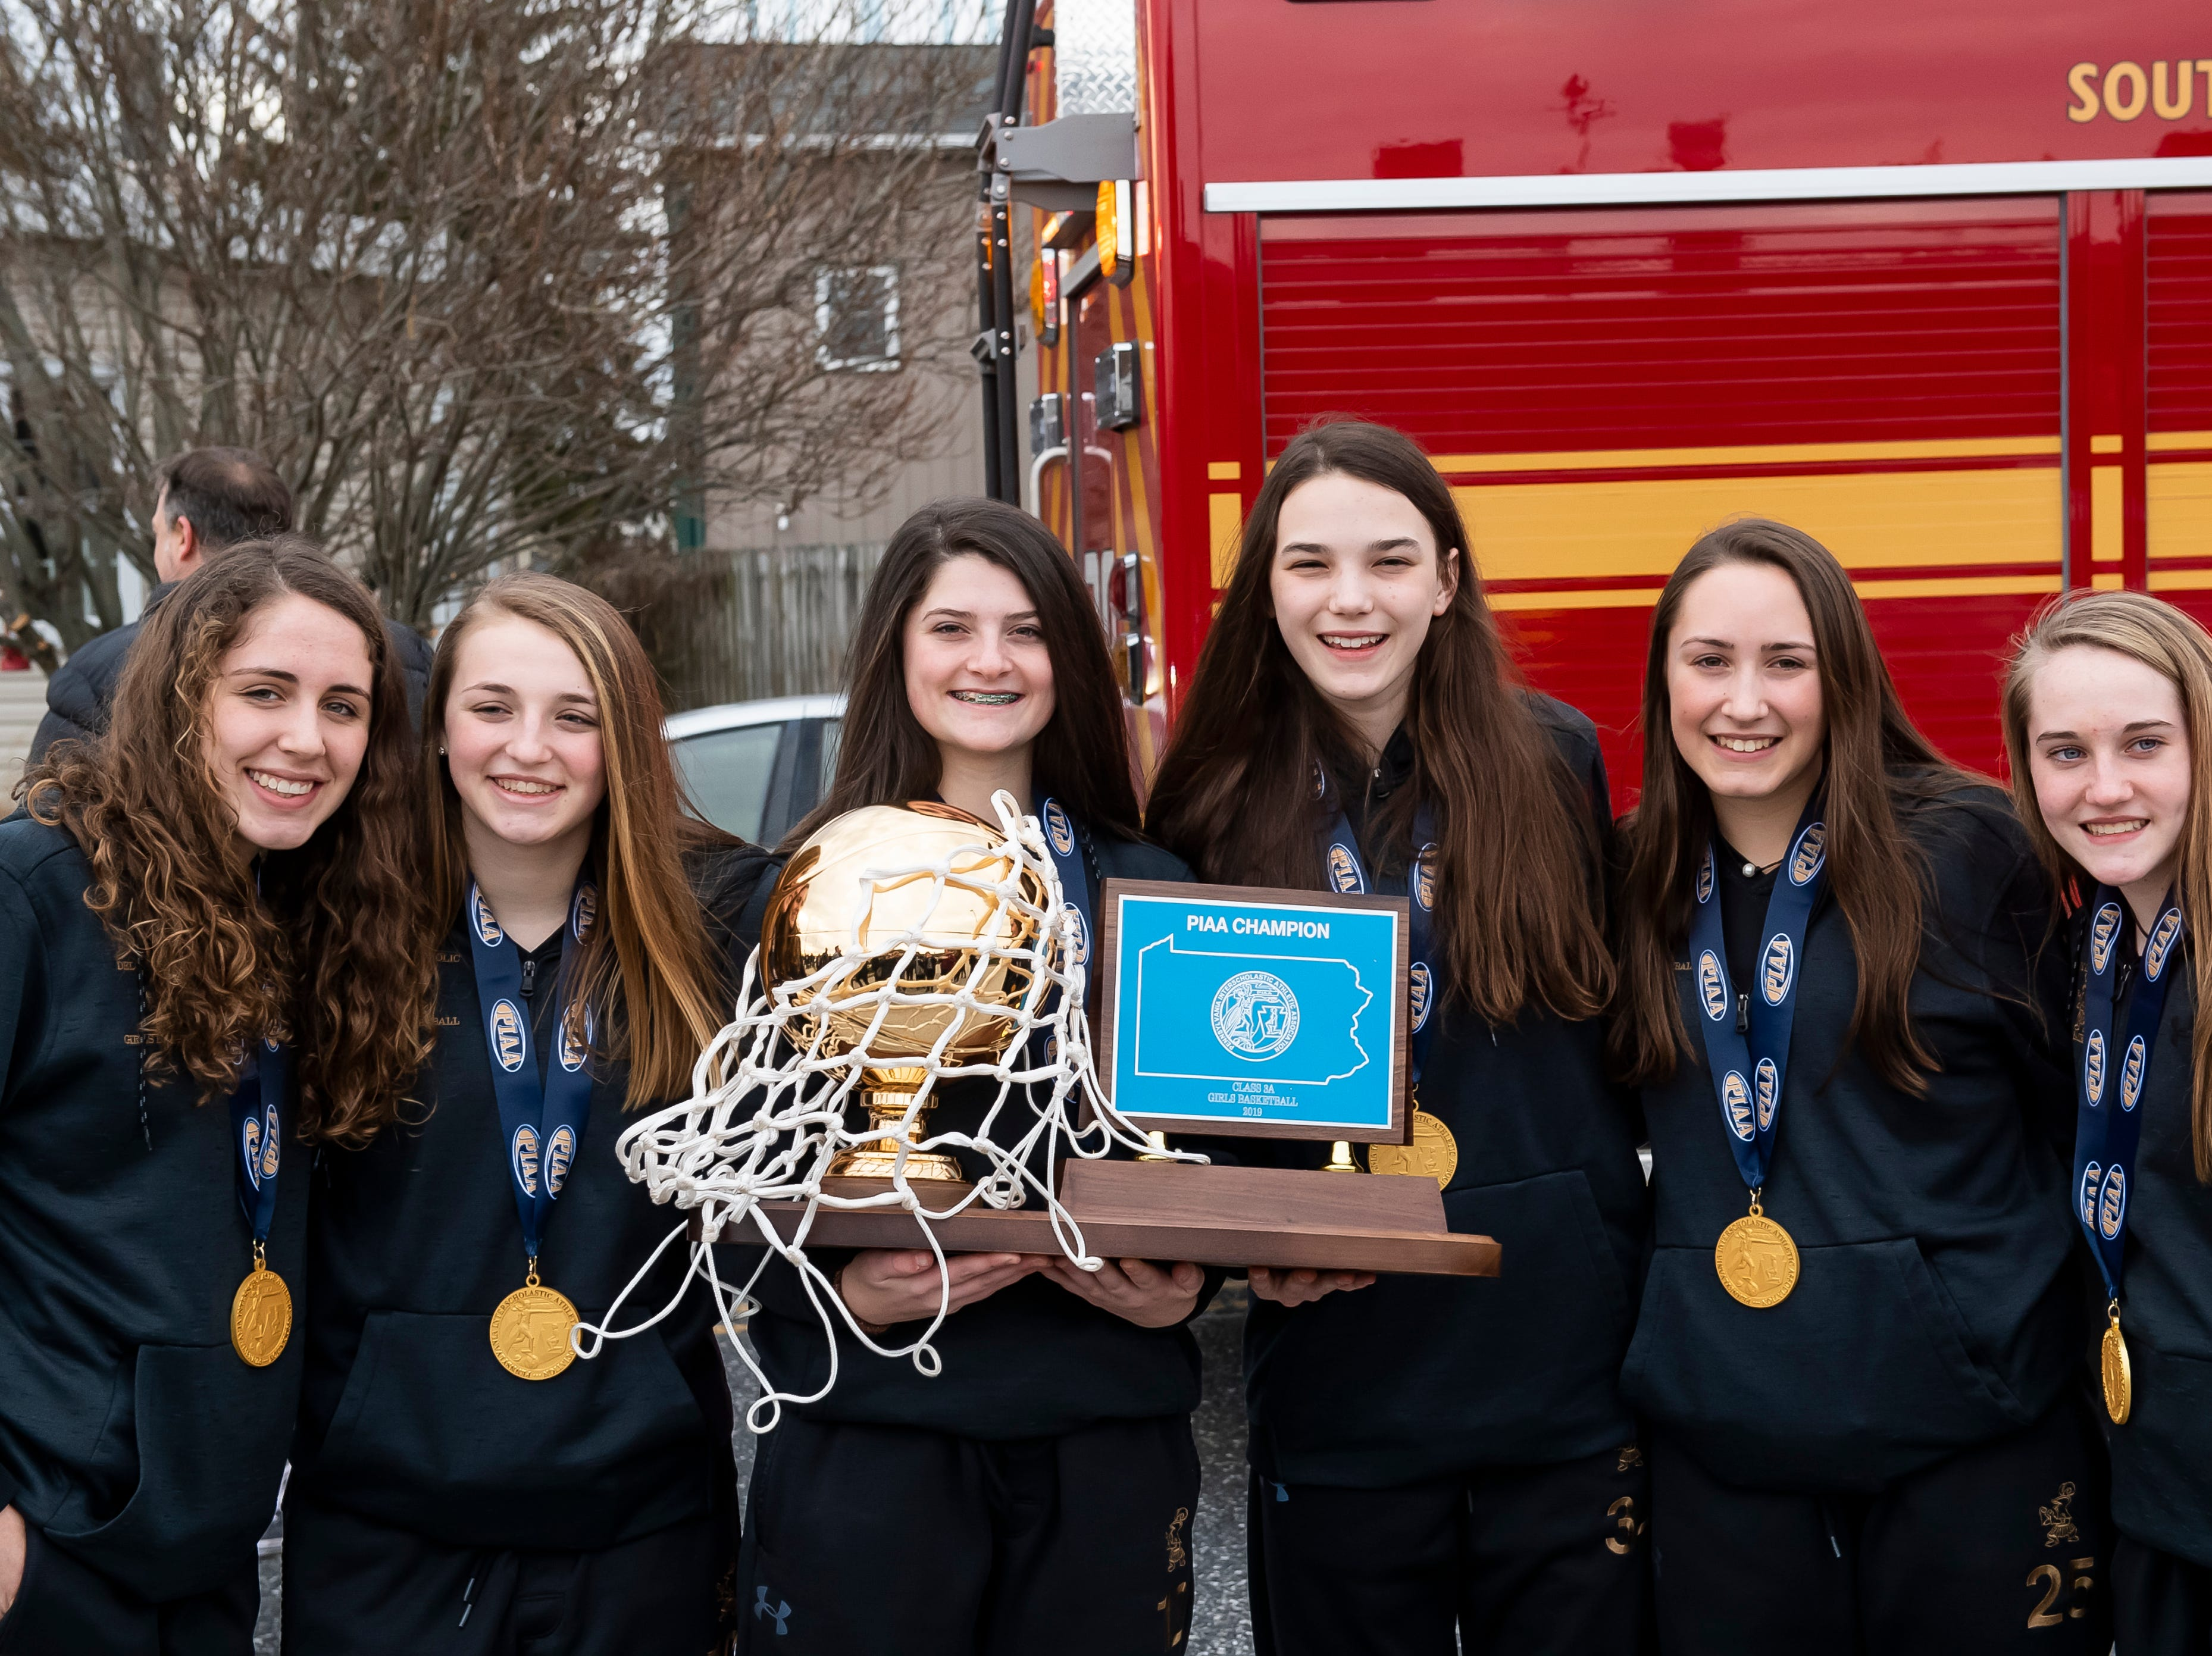 Members of the Delone Catholic girls basketball team pose for photos following a parade in McSherrystown celebrating their PIAA championship on Thursday, March 28, 2019.